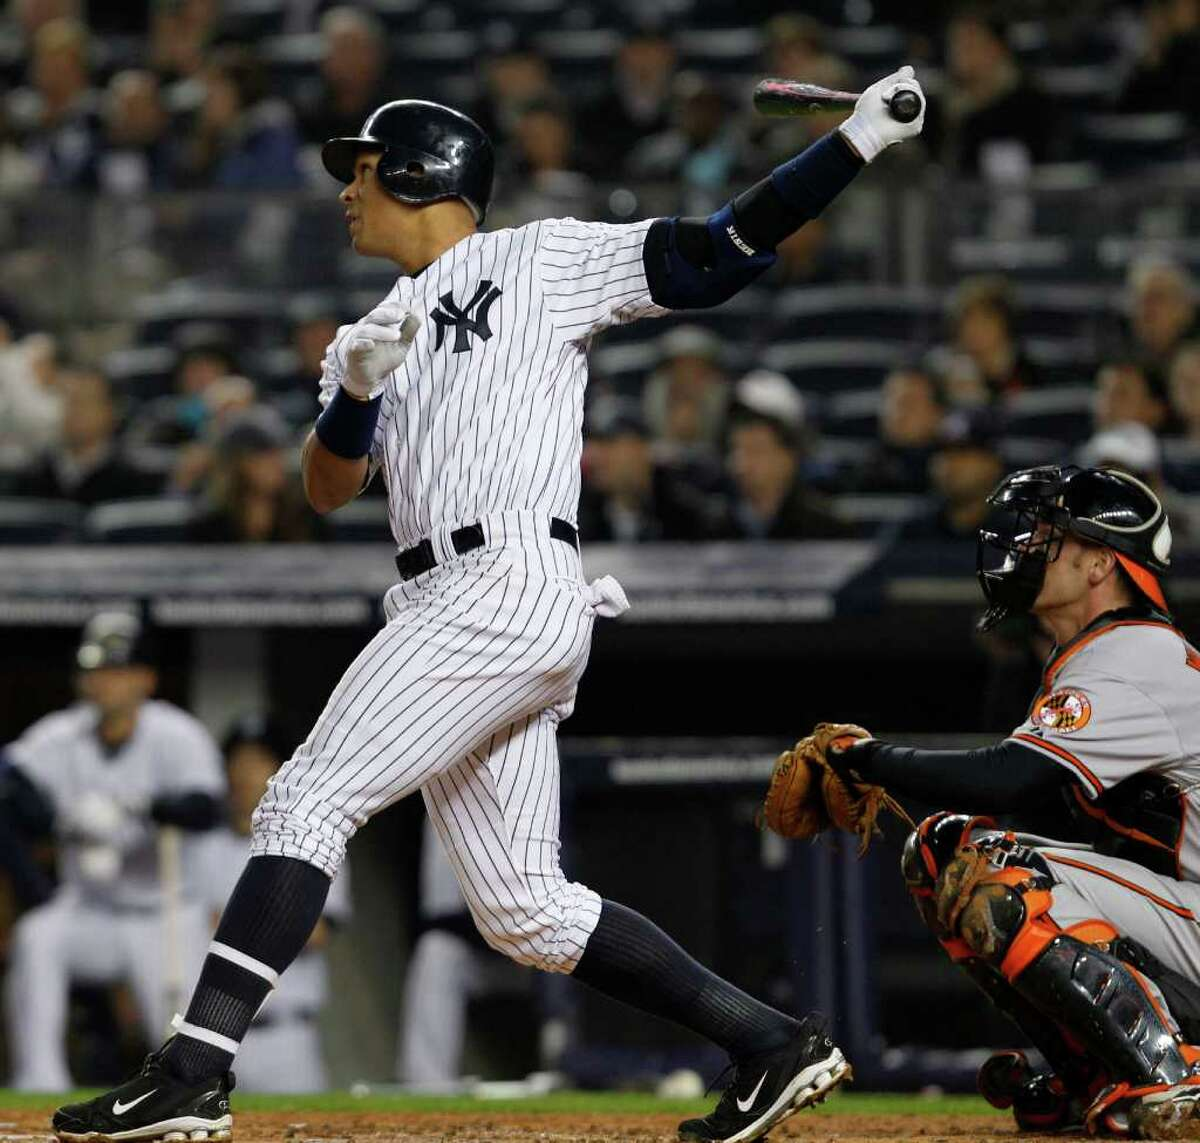 Alex Rodriguez watches a home run off Baltimore Orioles starting pitcher Chris Tillman in a game at Yankee Stadium April 13. (AP Photo/Kathy Willens)